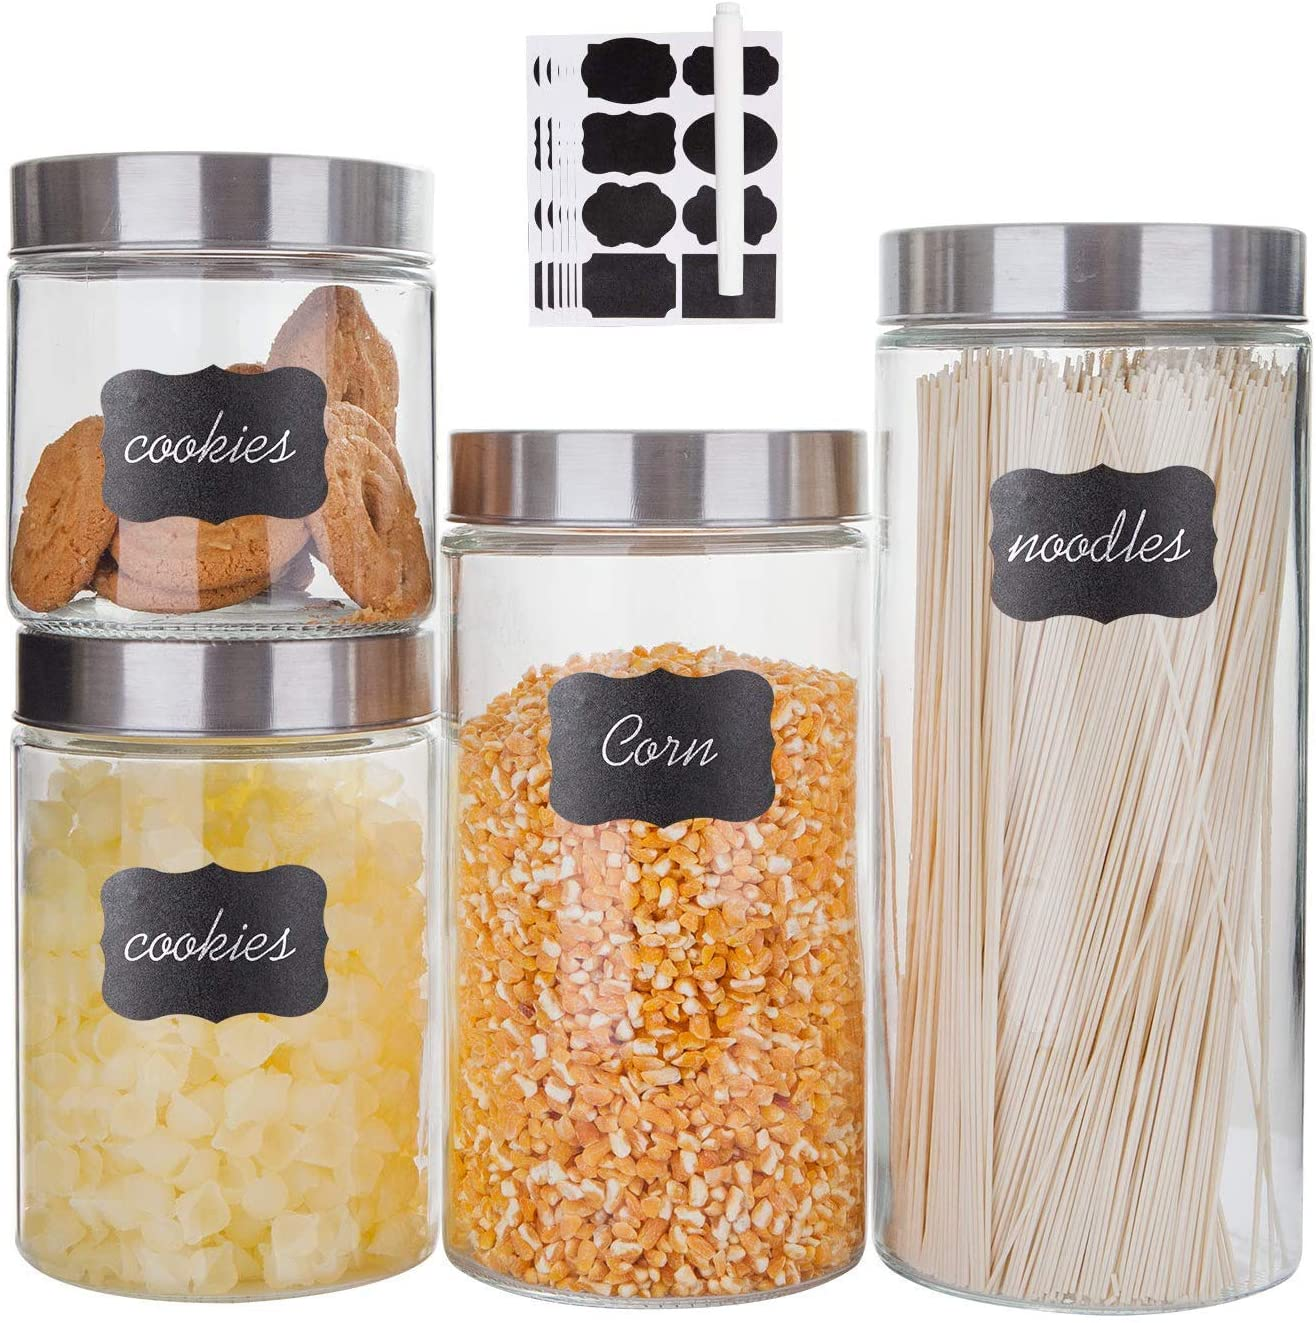 food storage containers 3pcs glass